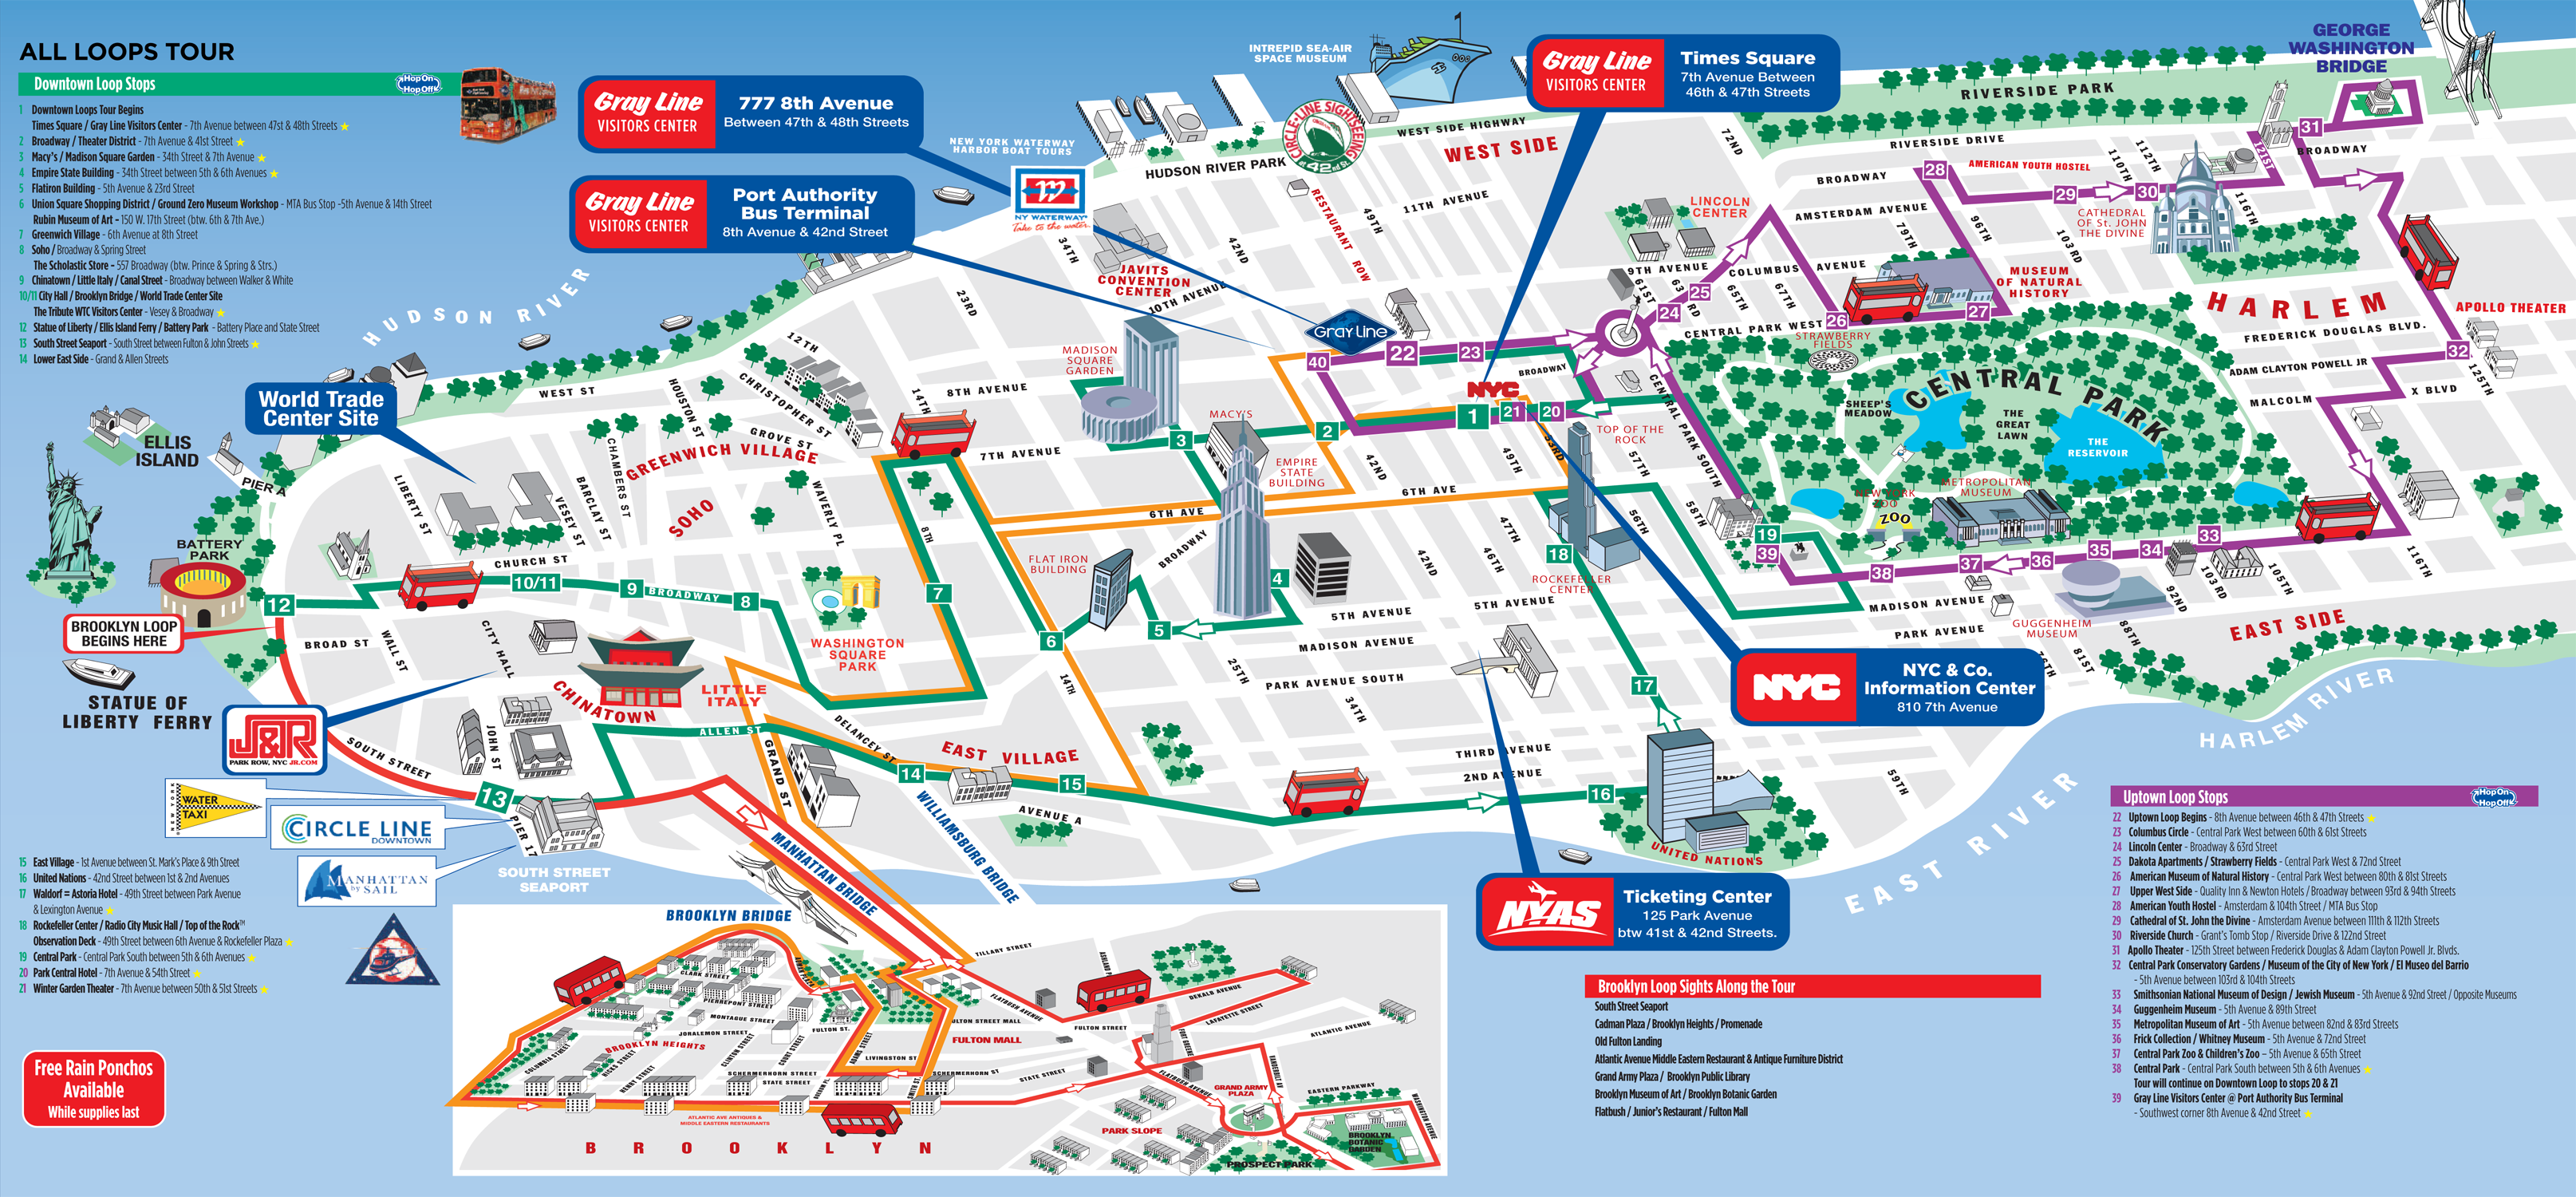 Maps update 30001102 tourist map of new york city map for Attractions in new york new york